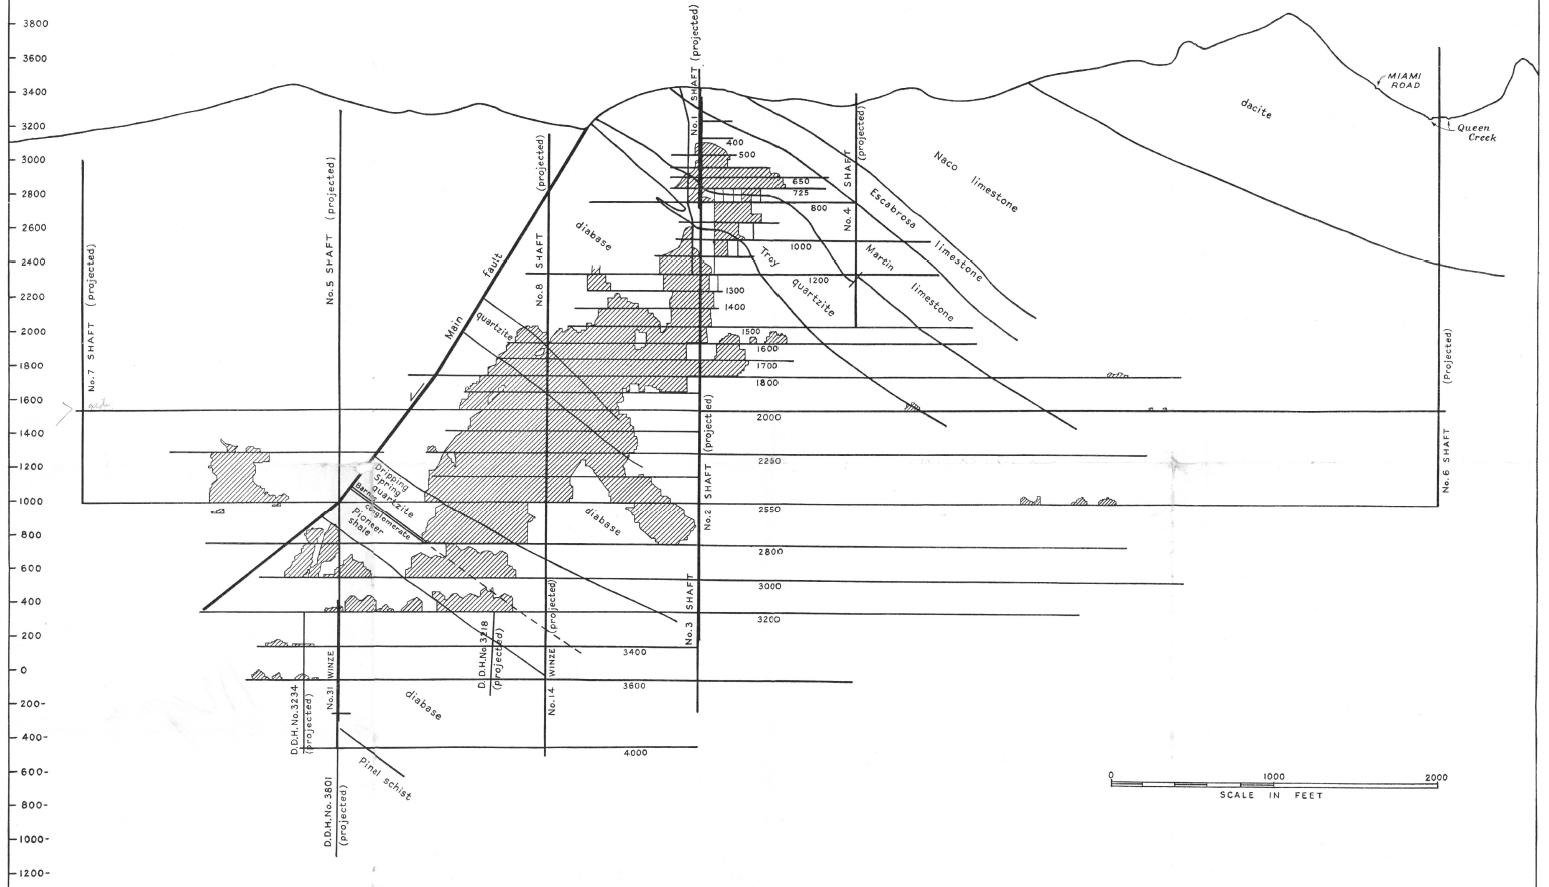 Figure 4. Mine working of the Magma Mine superposed on a cross section of the geology of the Superior, Arizona, area.